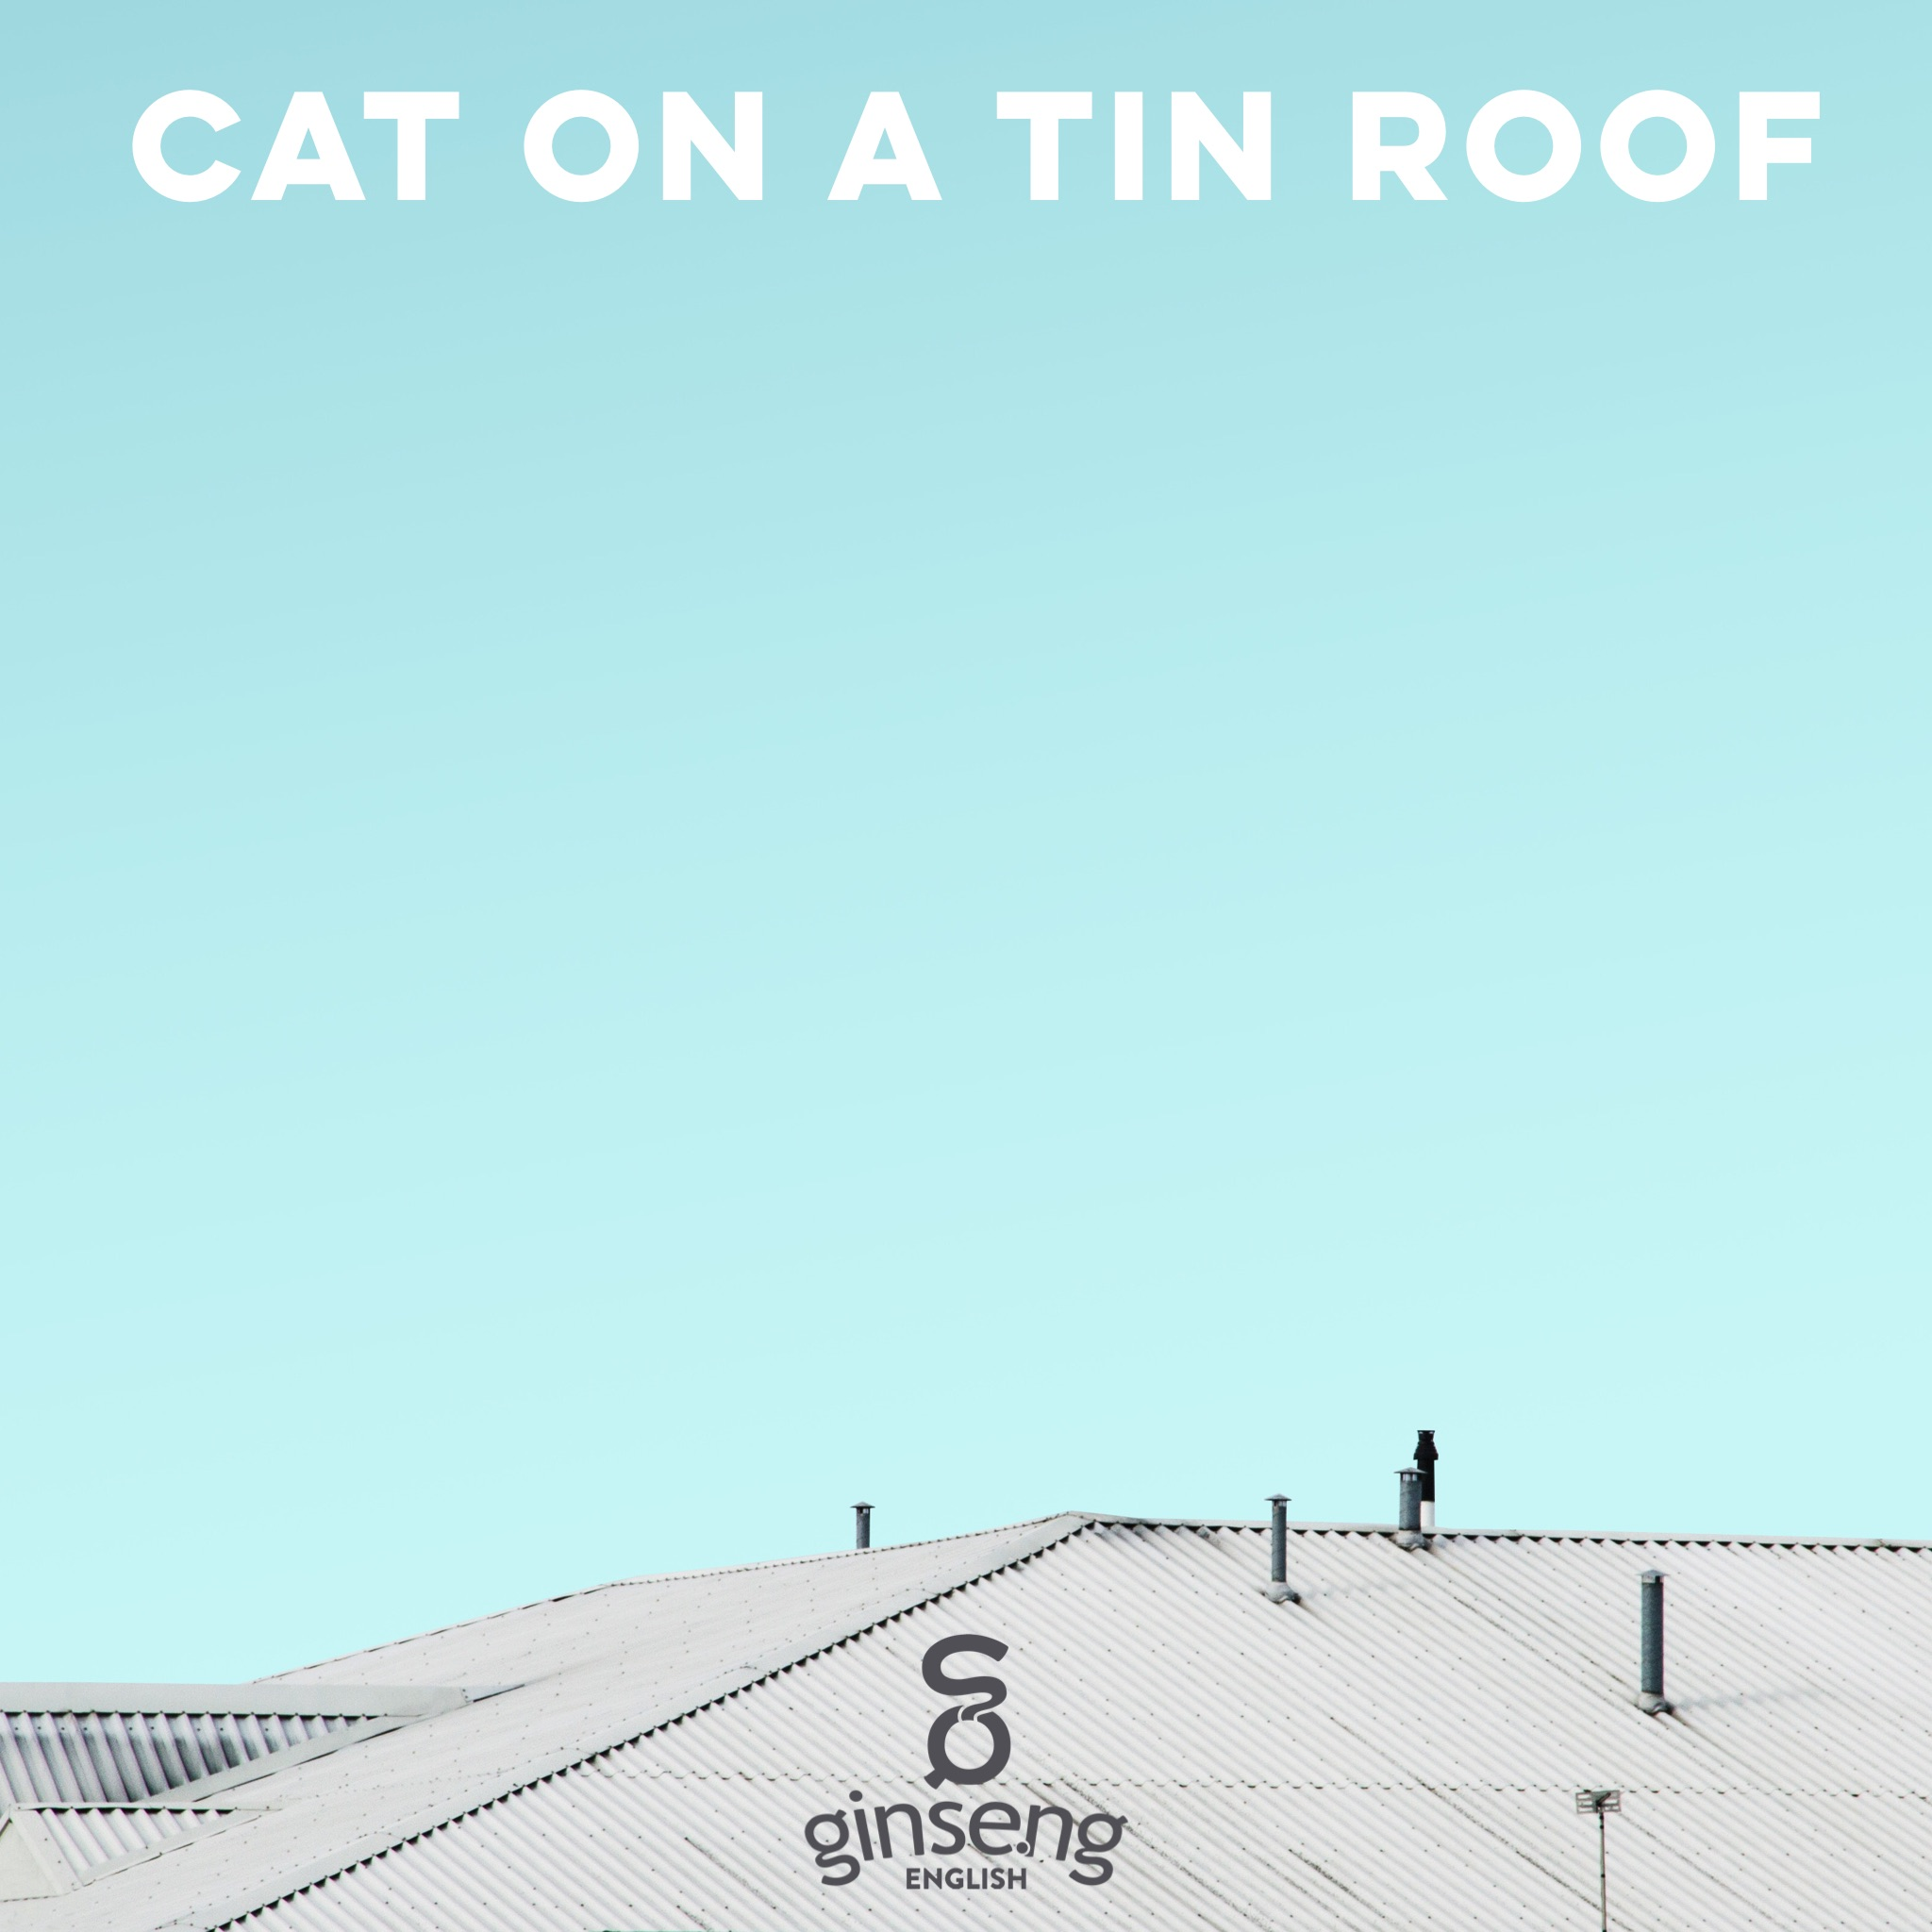 cat on a tin roof.PNG